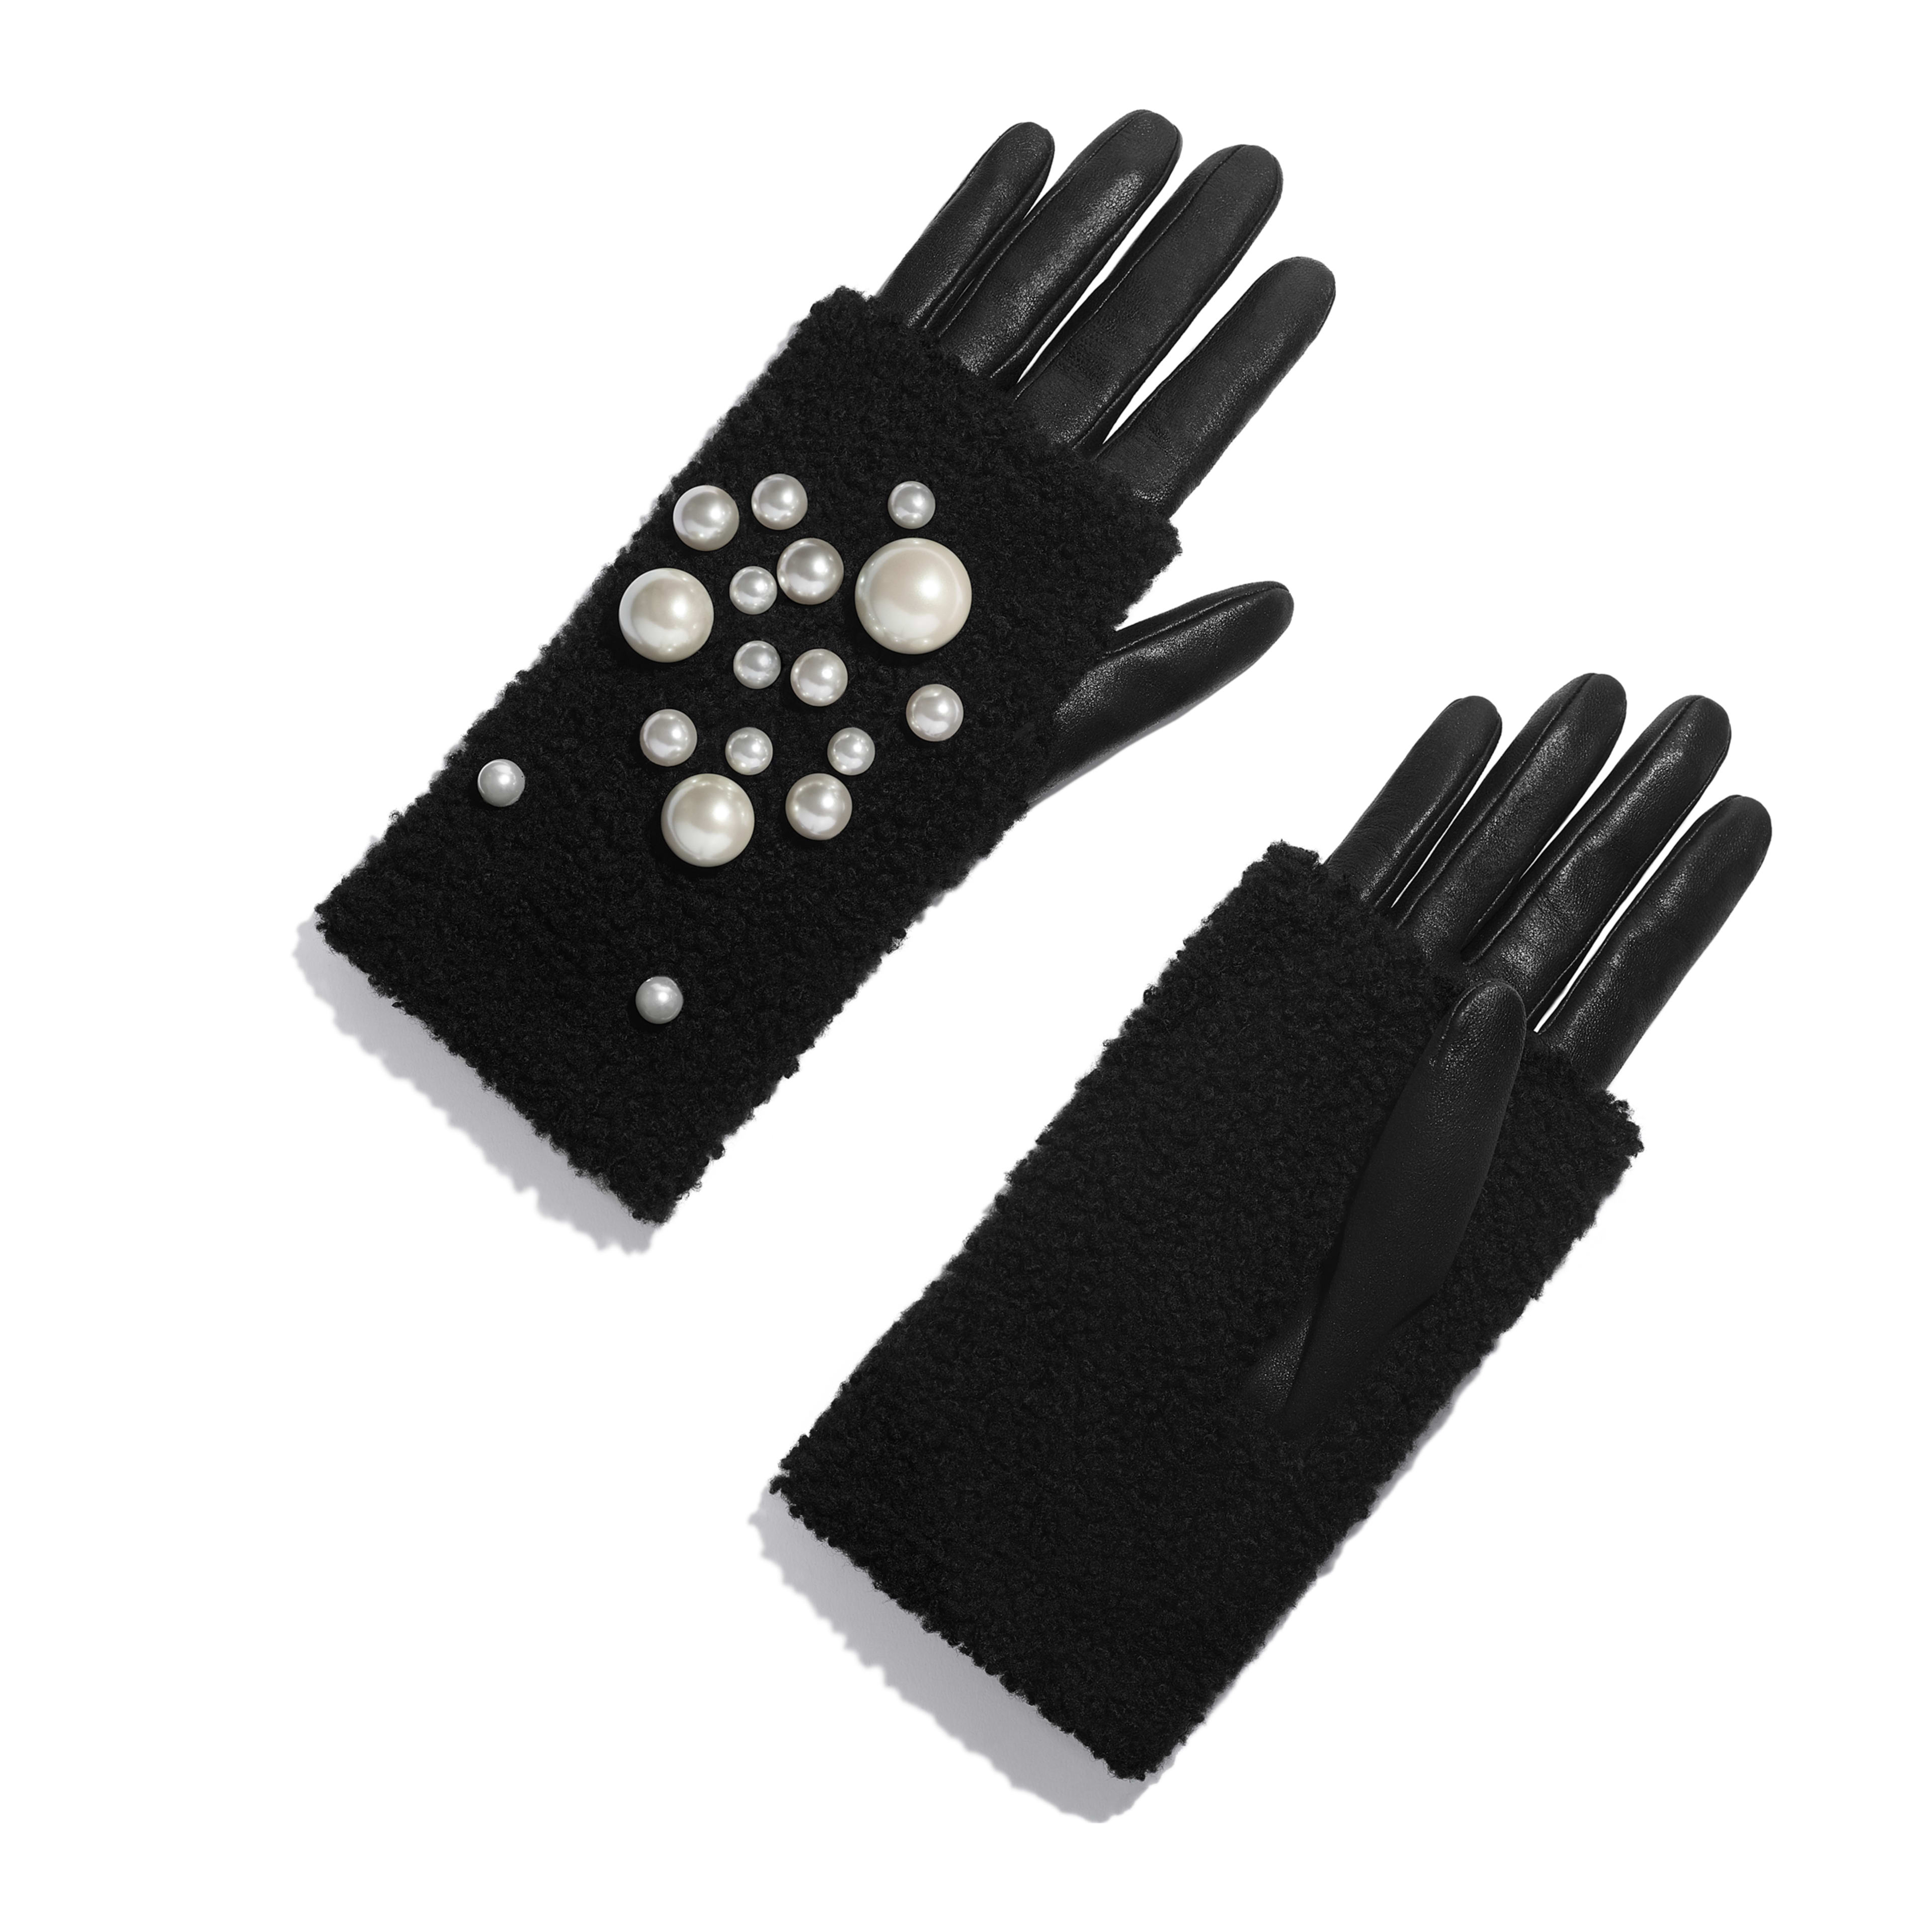 Gloves - Black - Lambskin, Shearling & Pearls - Default view - see full sized version